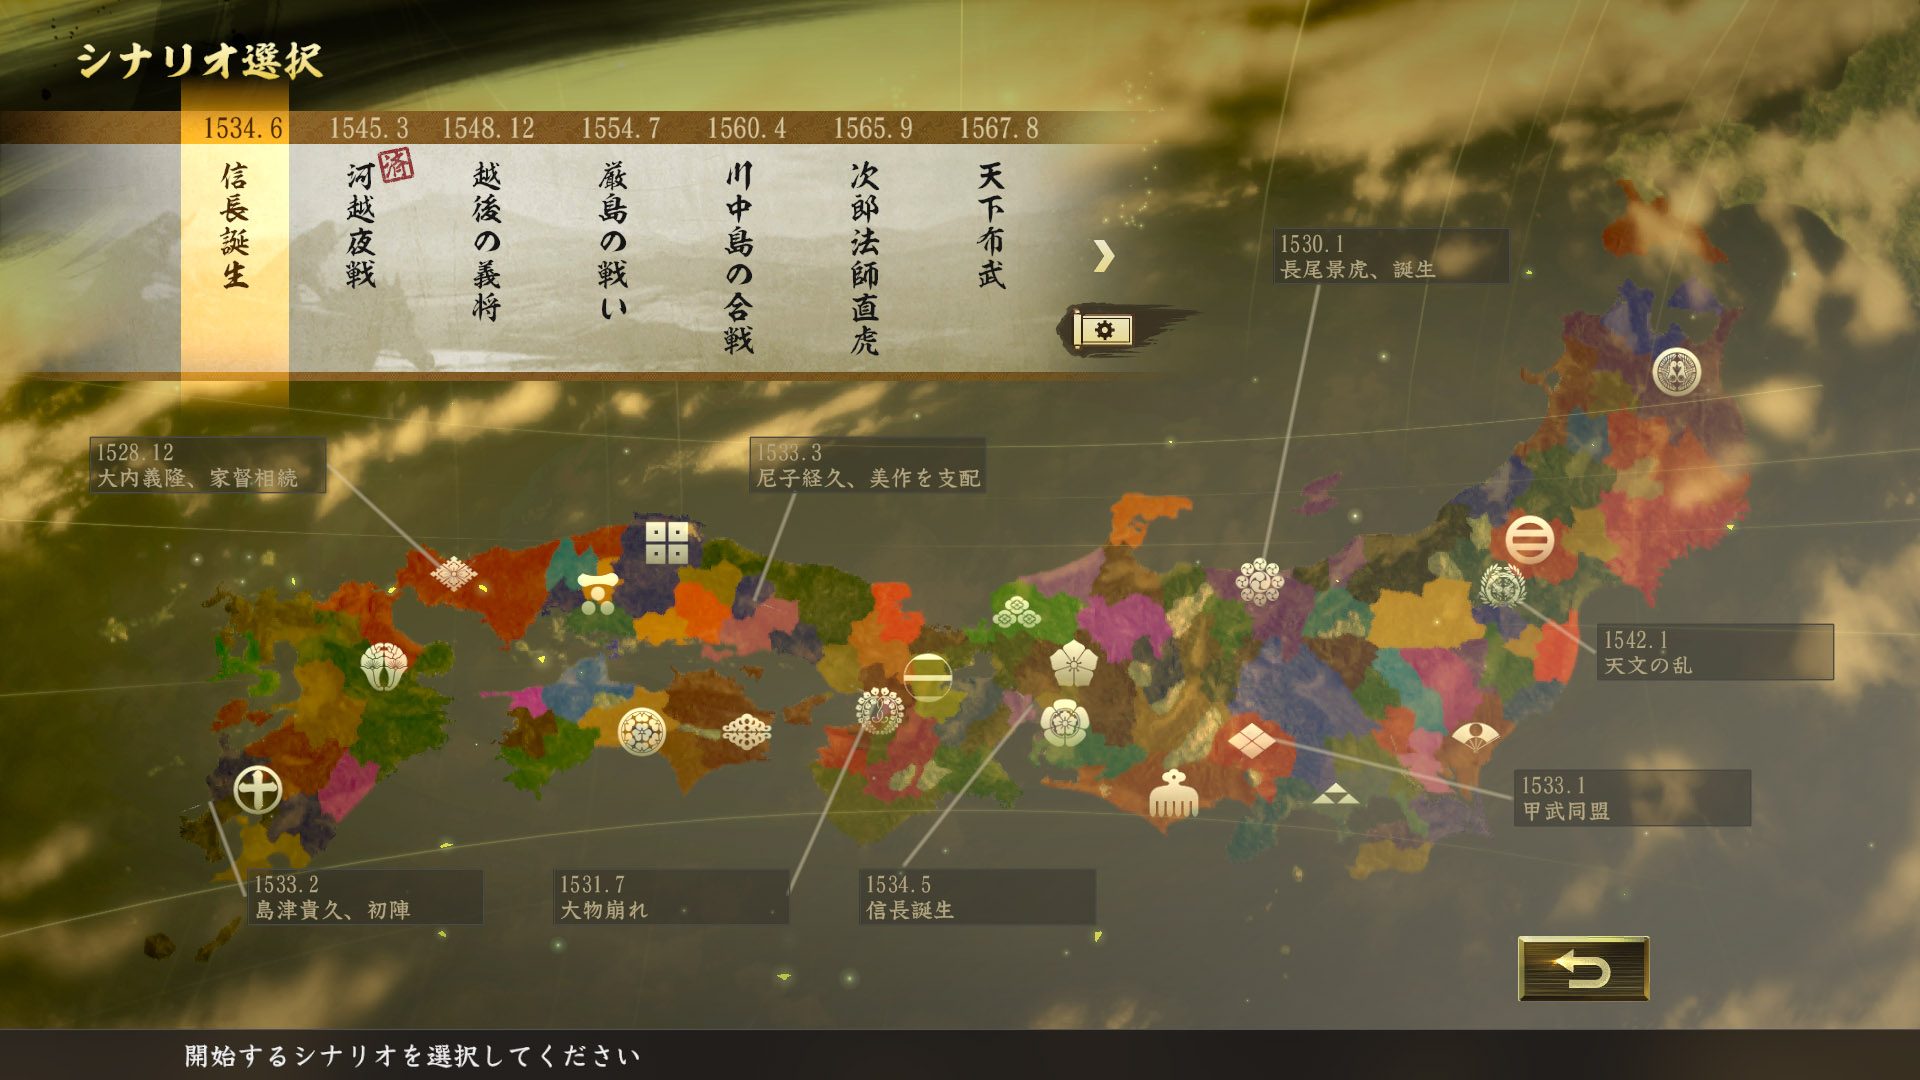 Nobunaga's Ambition: Taishi Screenshot 1